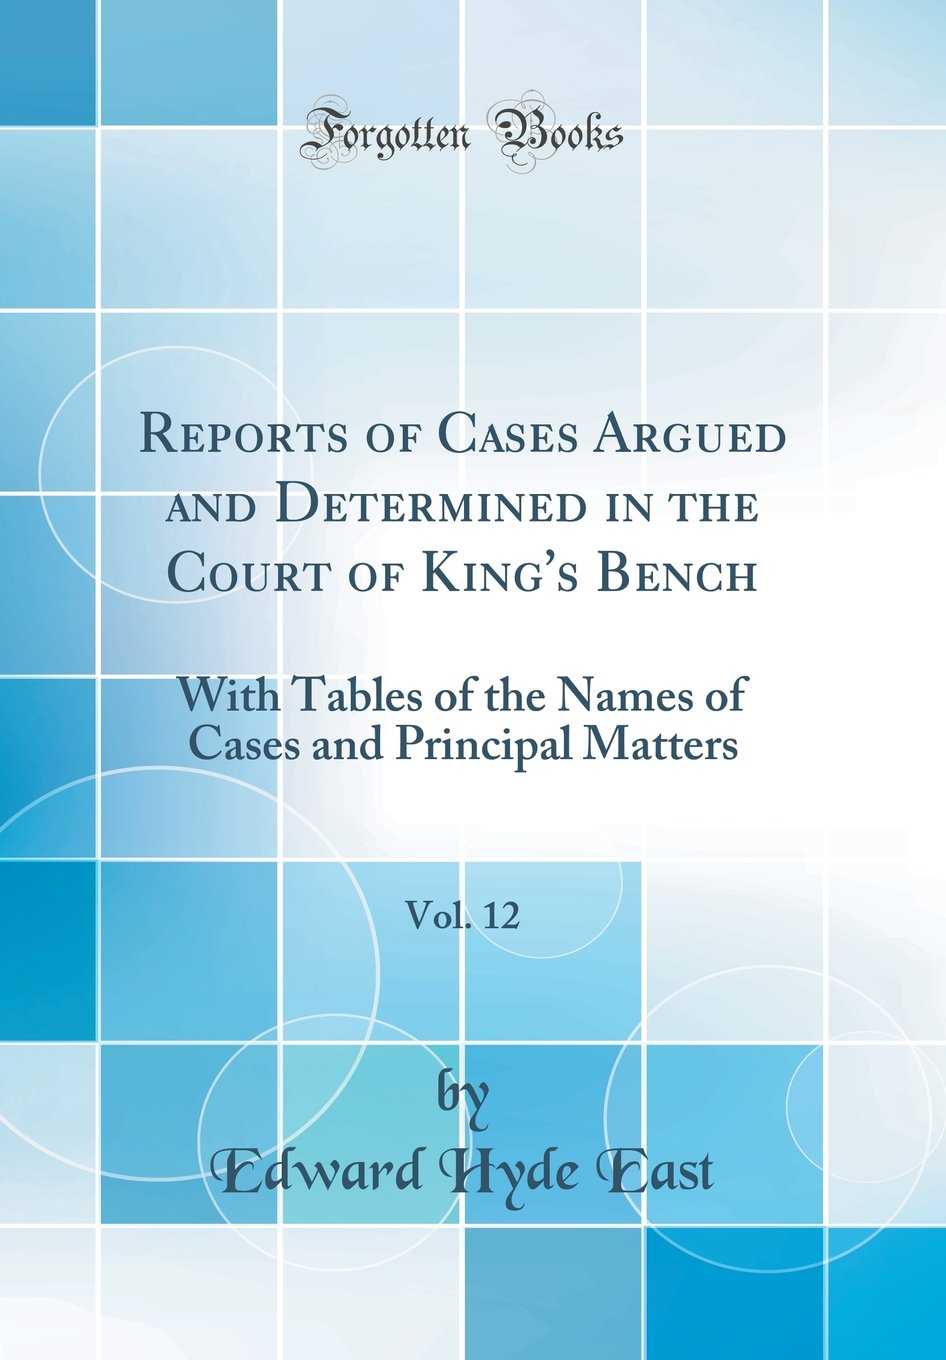 Reports of Cases Argued and Determined in the Court of King's Bench, Vol. 12: With Tables of the Names of Cases and Principal Matters (Classic Reprint) PDF